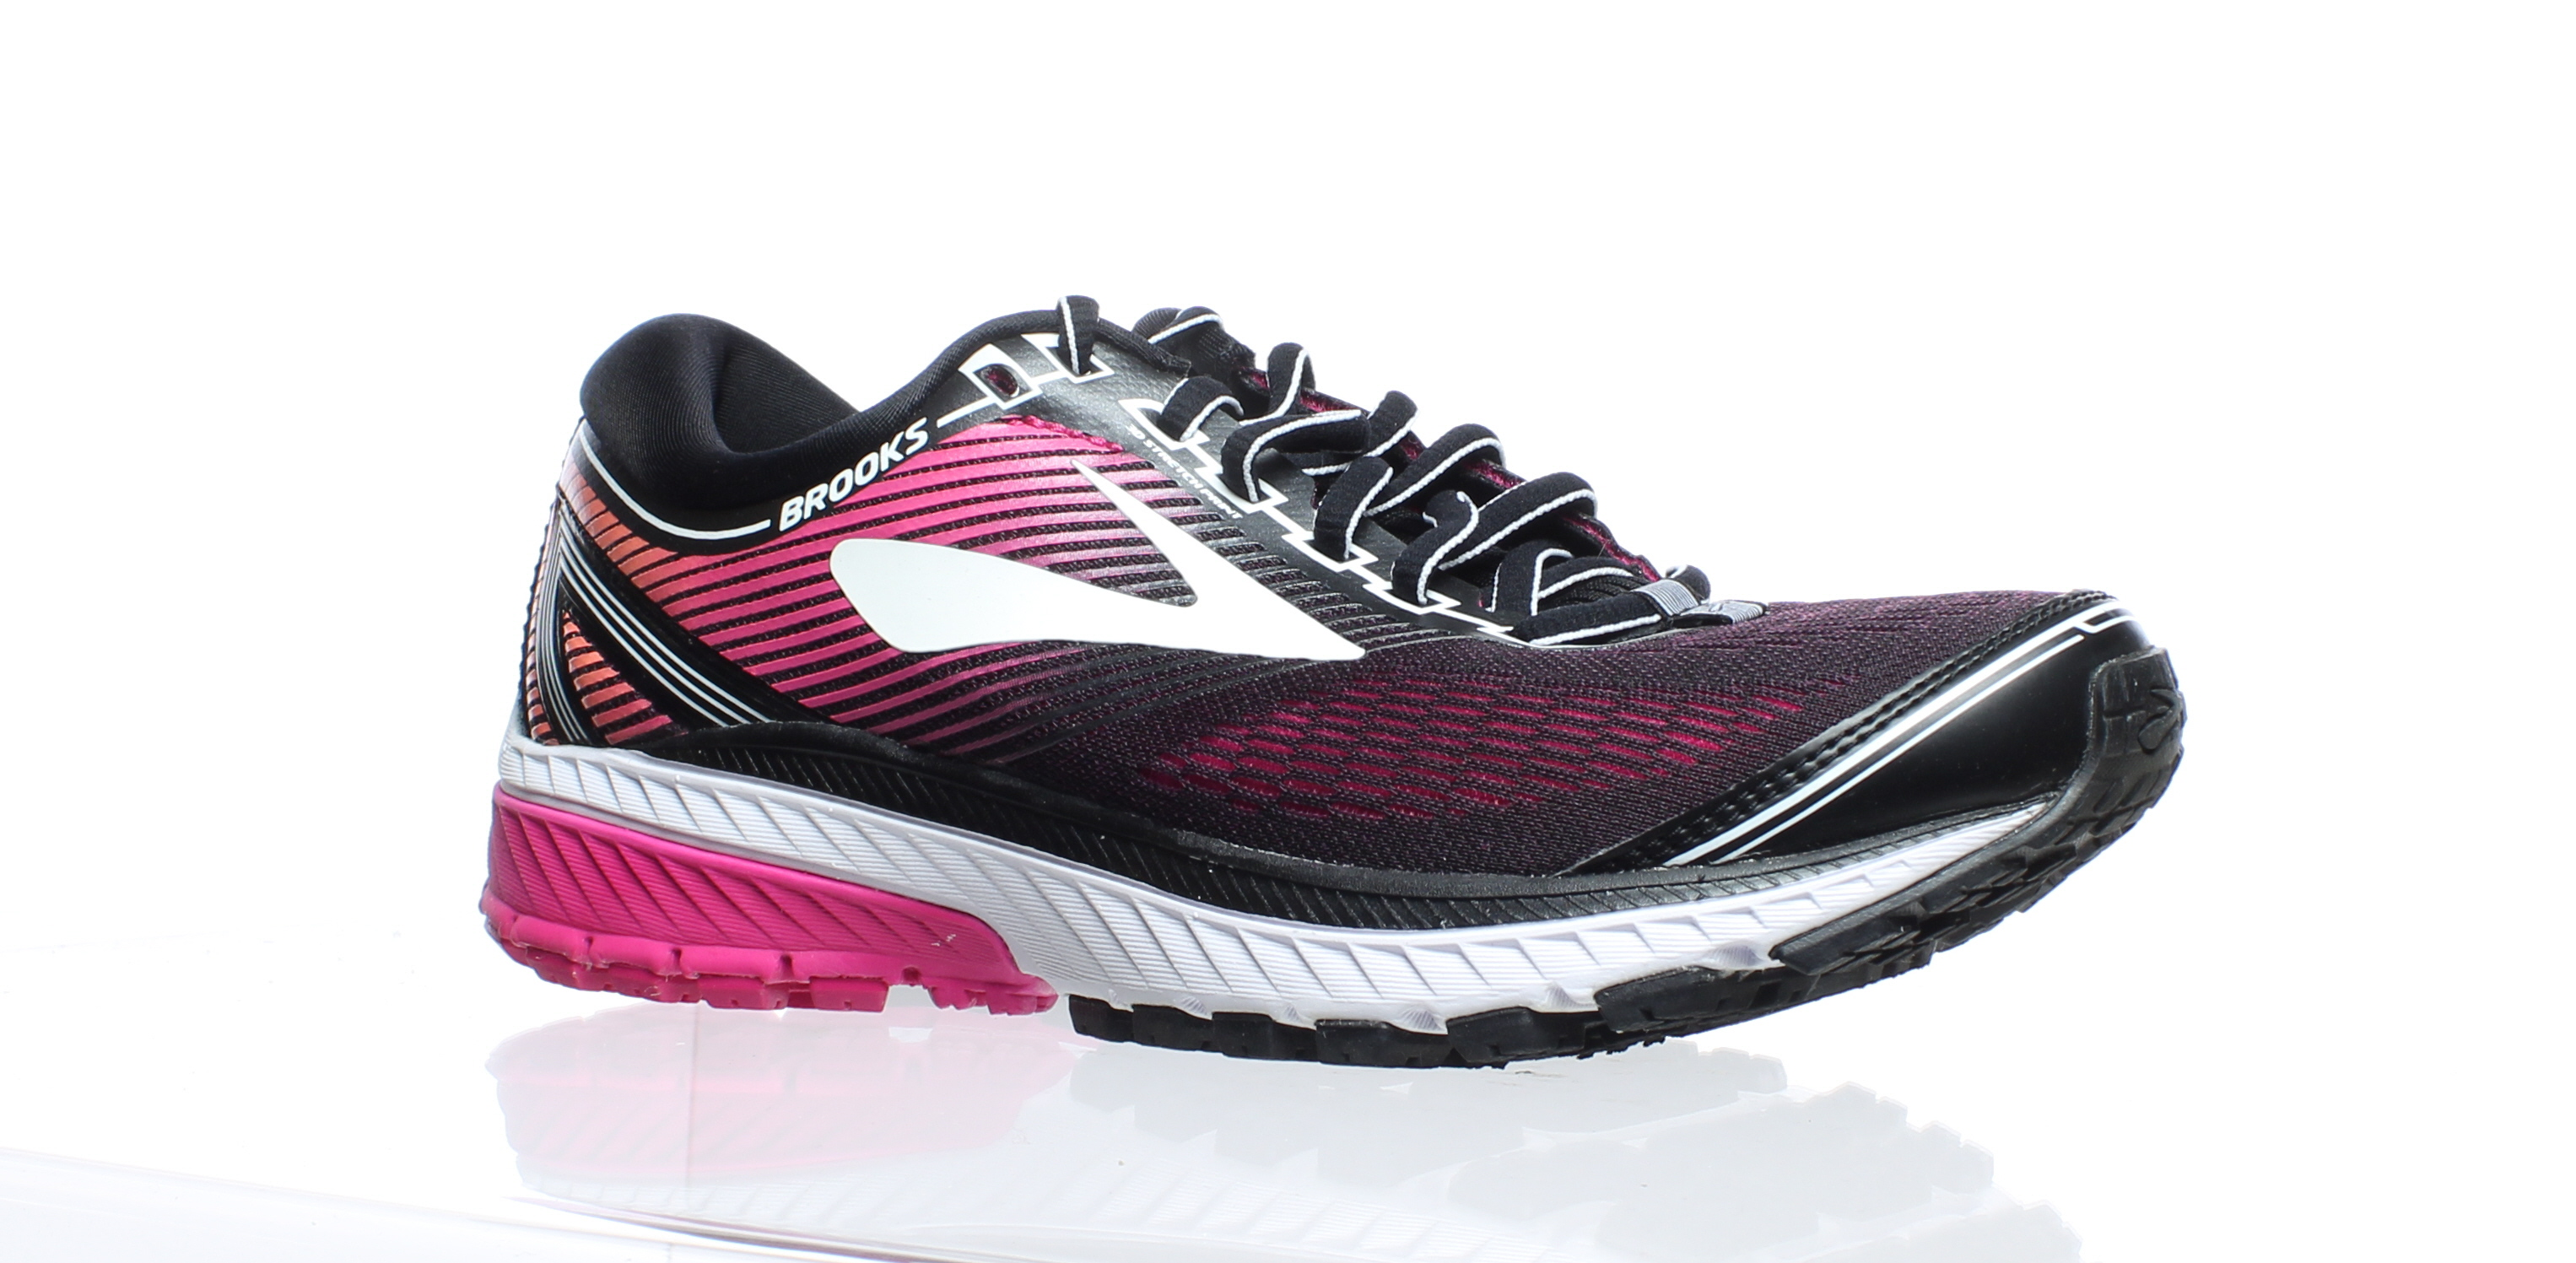 e81bcc7626b45 Details about Brooks Womens Ghost 10 Black Running Shoes Size 7.5 (272440)